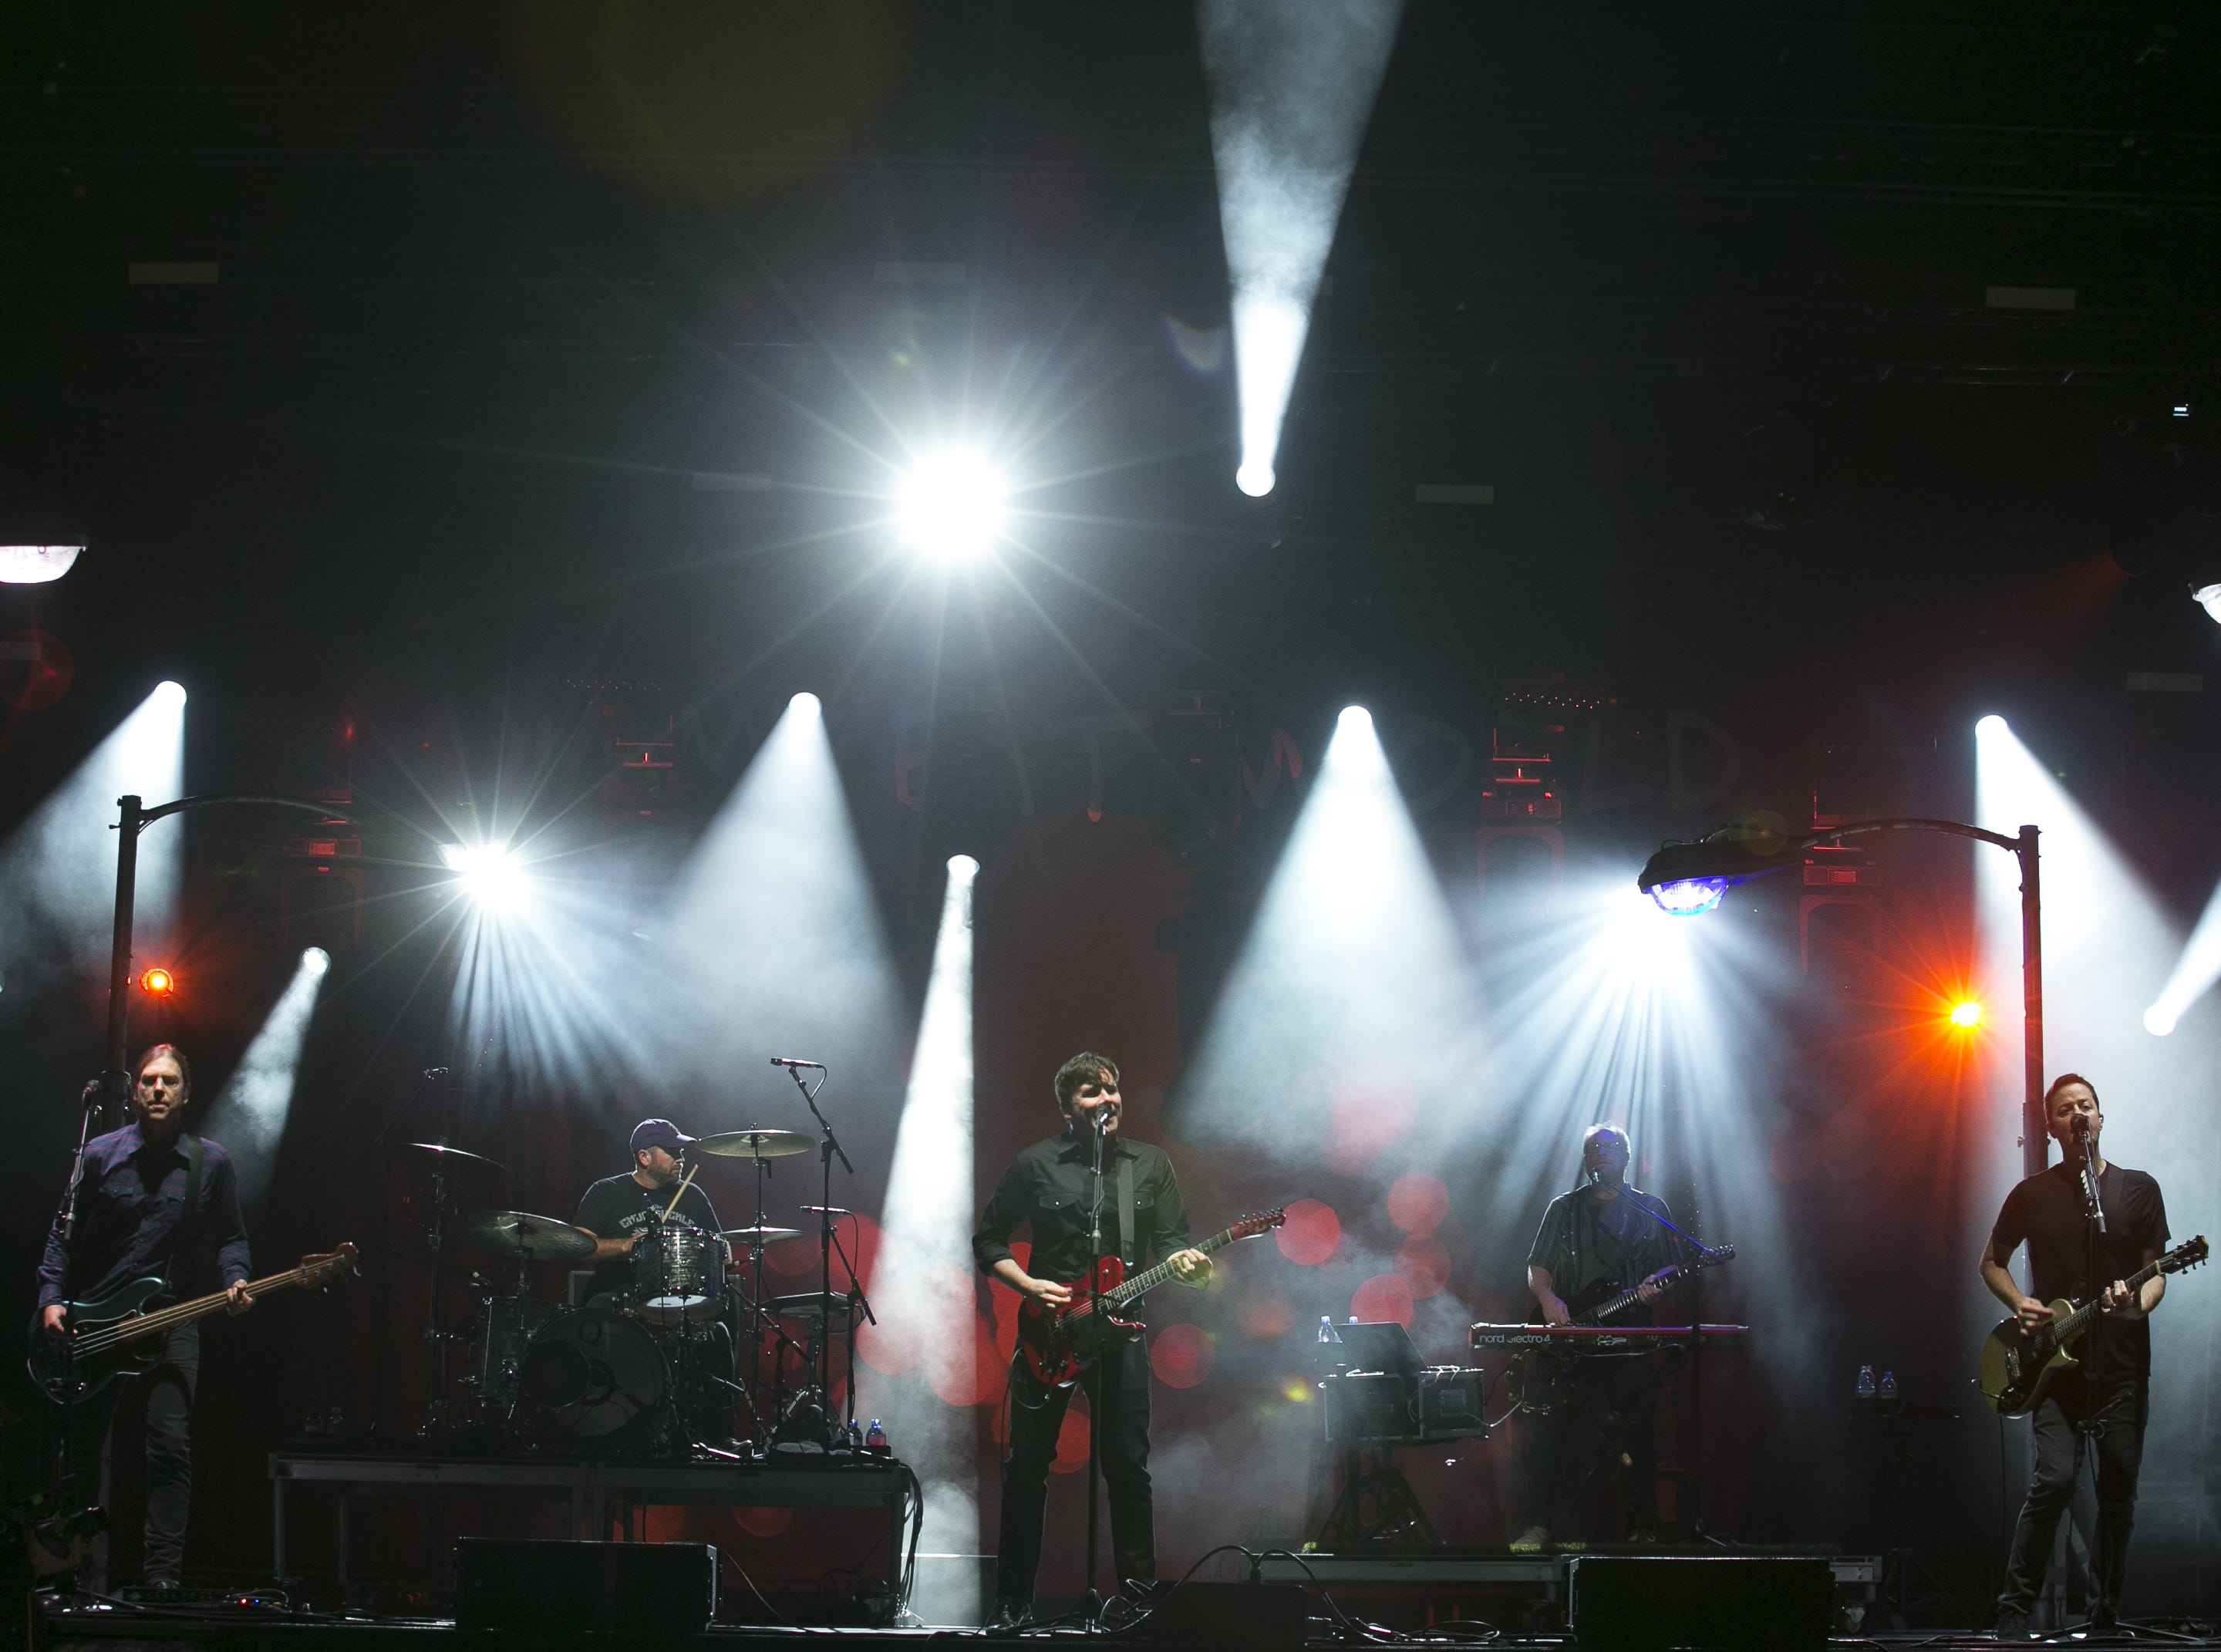 Jimmy Eat World perform at the Innings Festival at Tempe Beach Park on March 3, 2019.